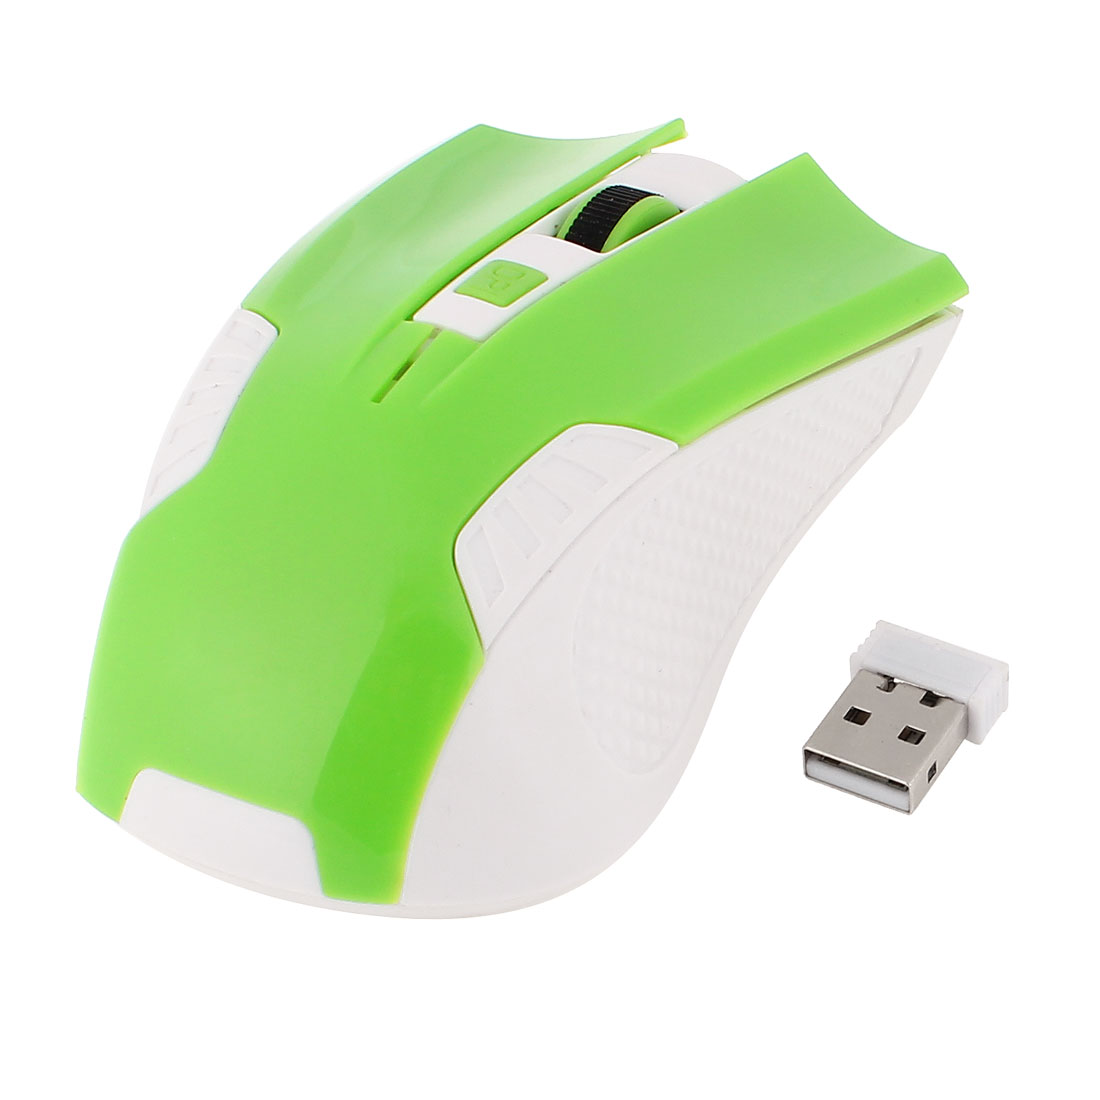 Green White Plastic 2.4G Wireless 800DPI Optical Mouse w USB Receiver for Notebook